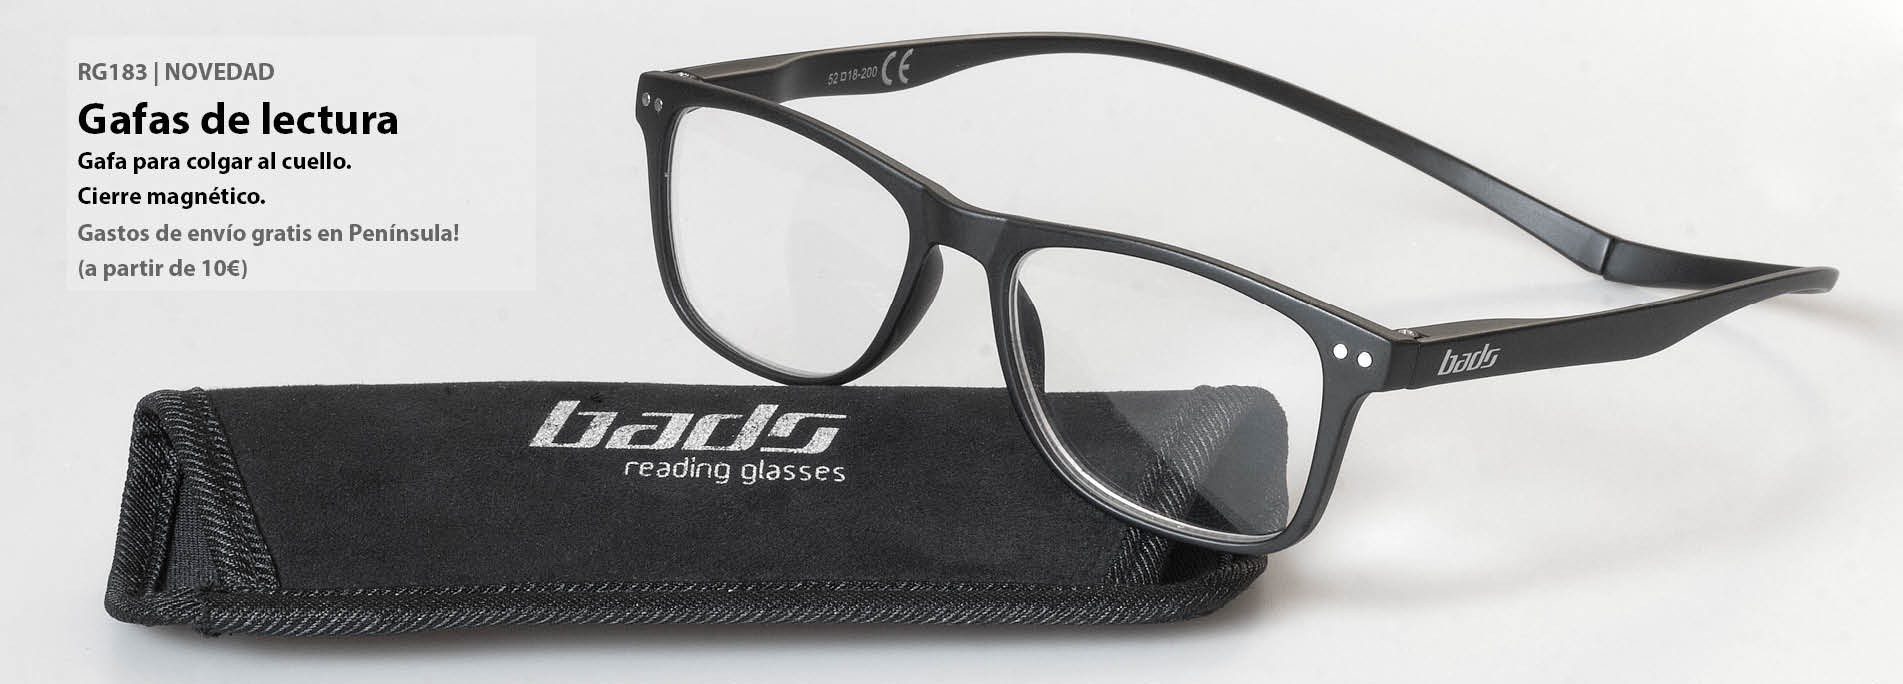 RG183 Bads reading glasses